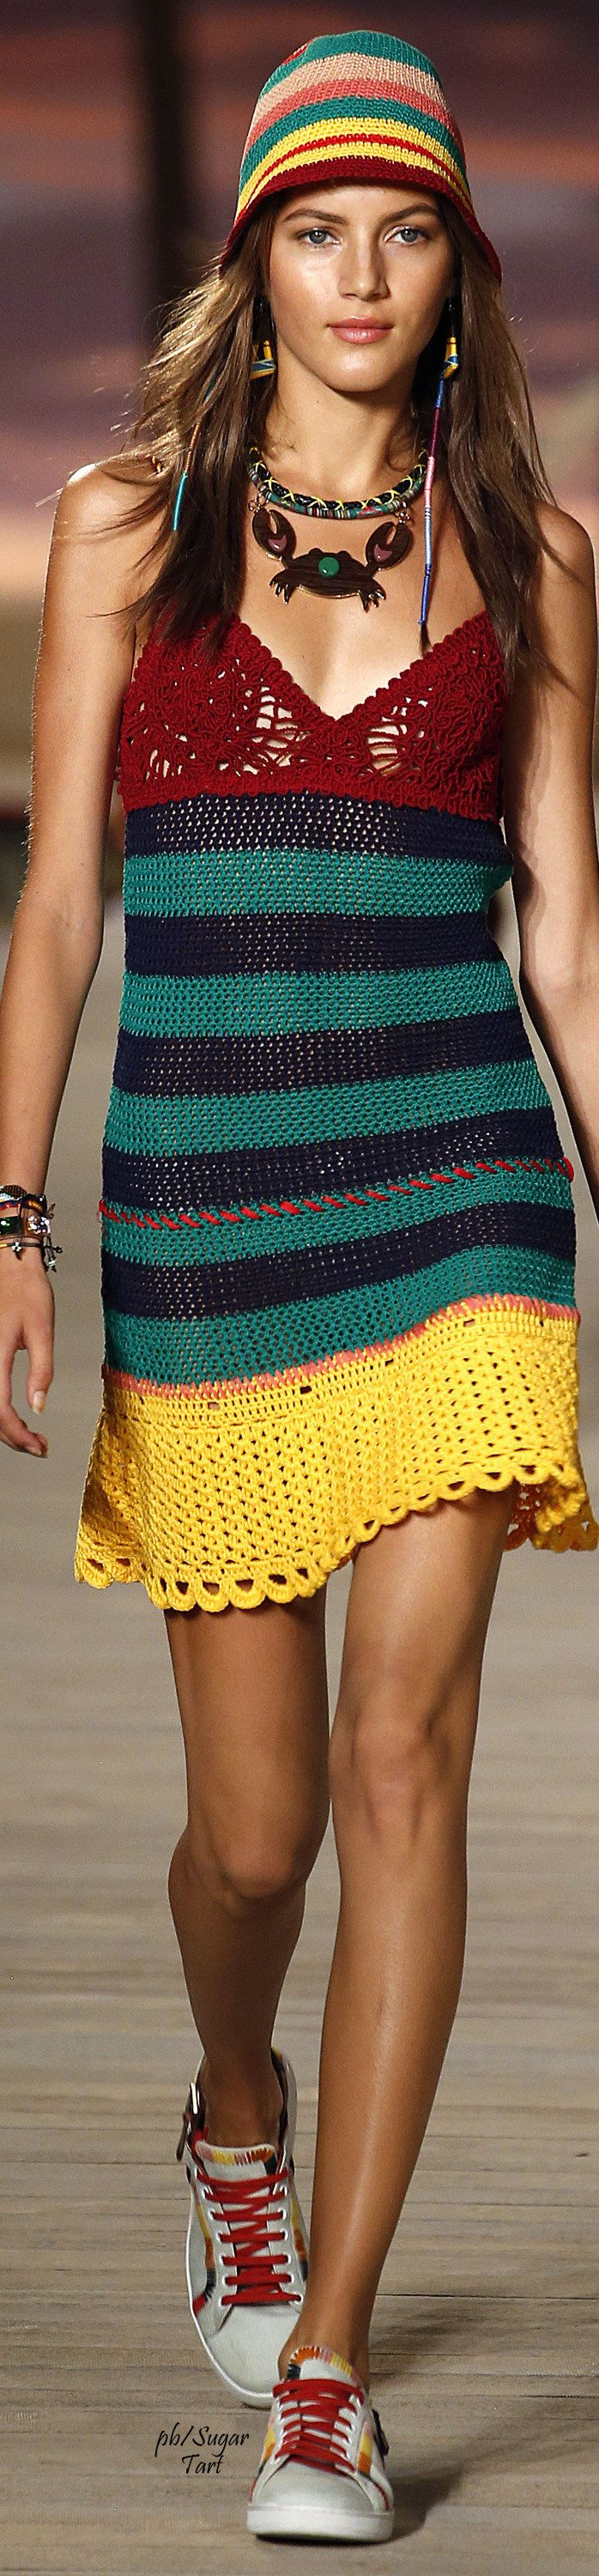 Tommy Hilfiger Spring 2016 | House of Beccaria knit dress women fashion outfit clothing style apparel @roressclothes closet ideas